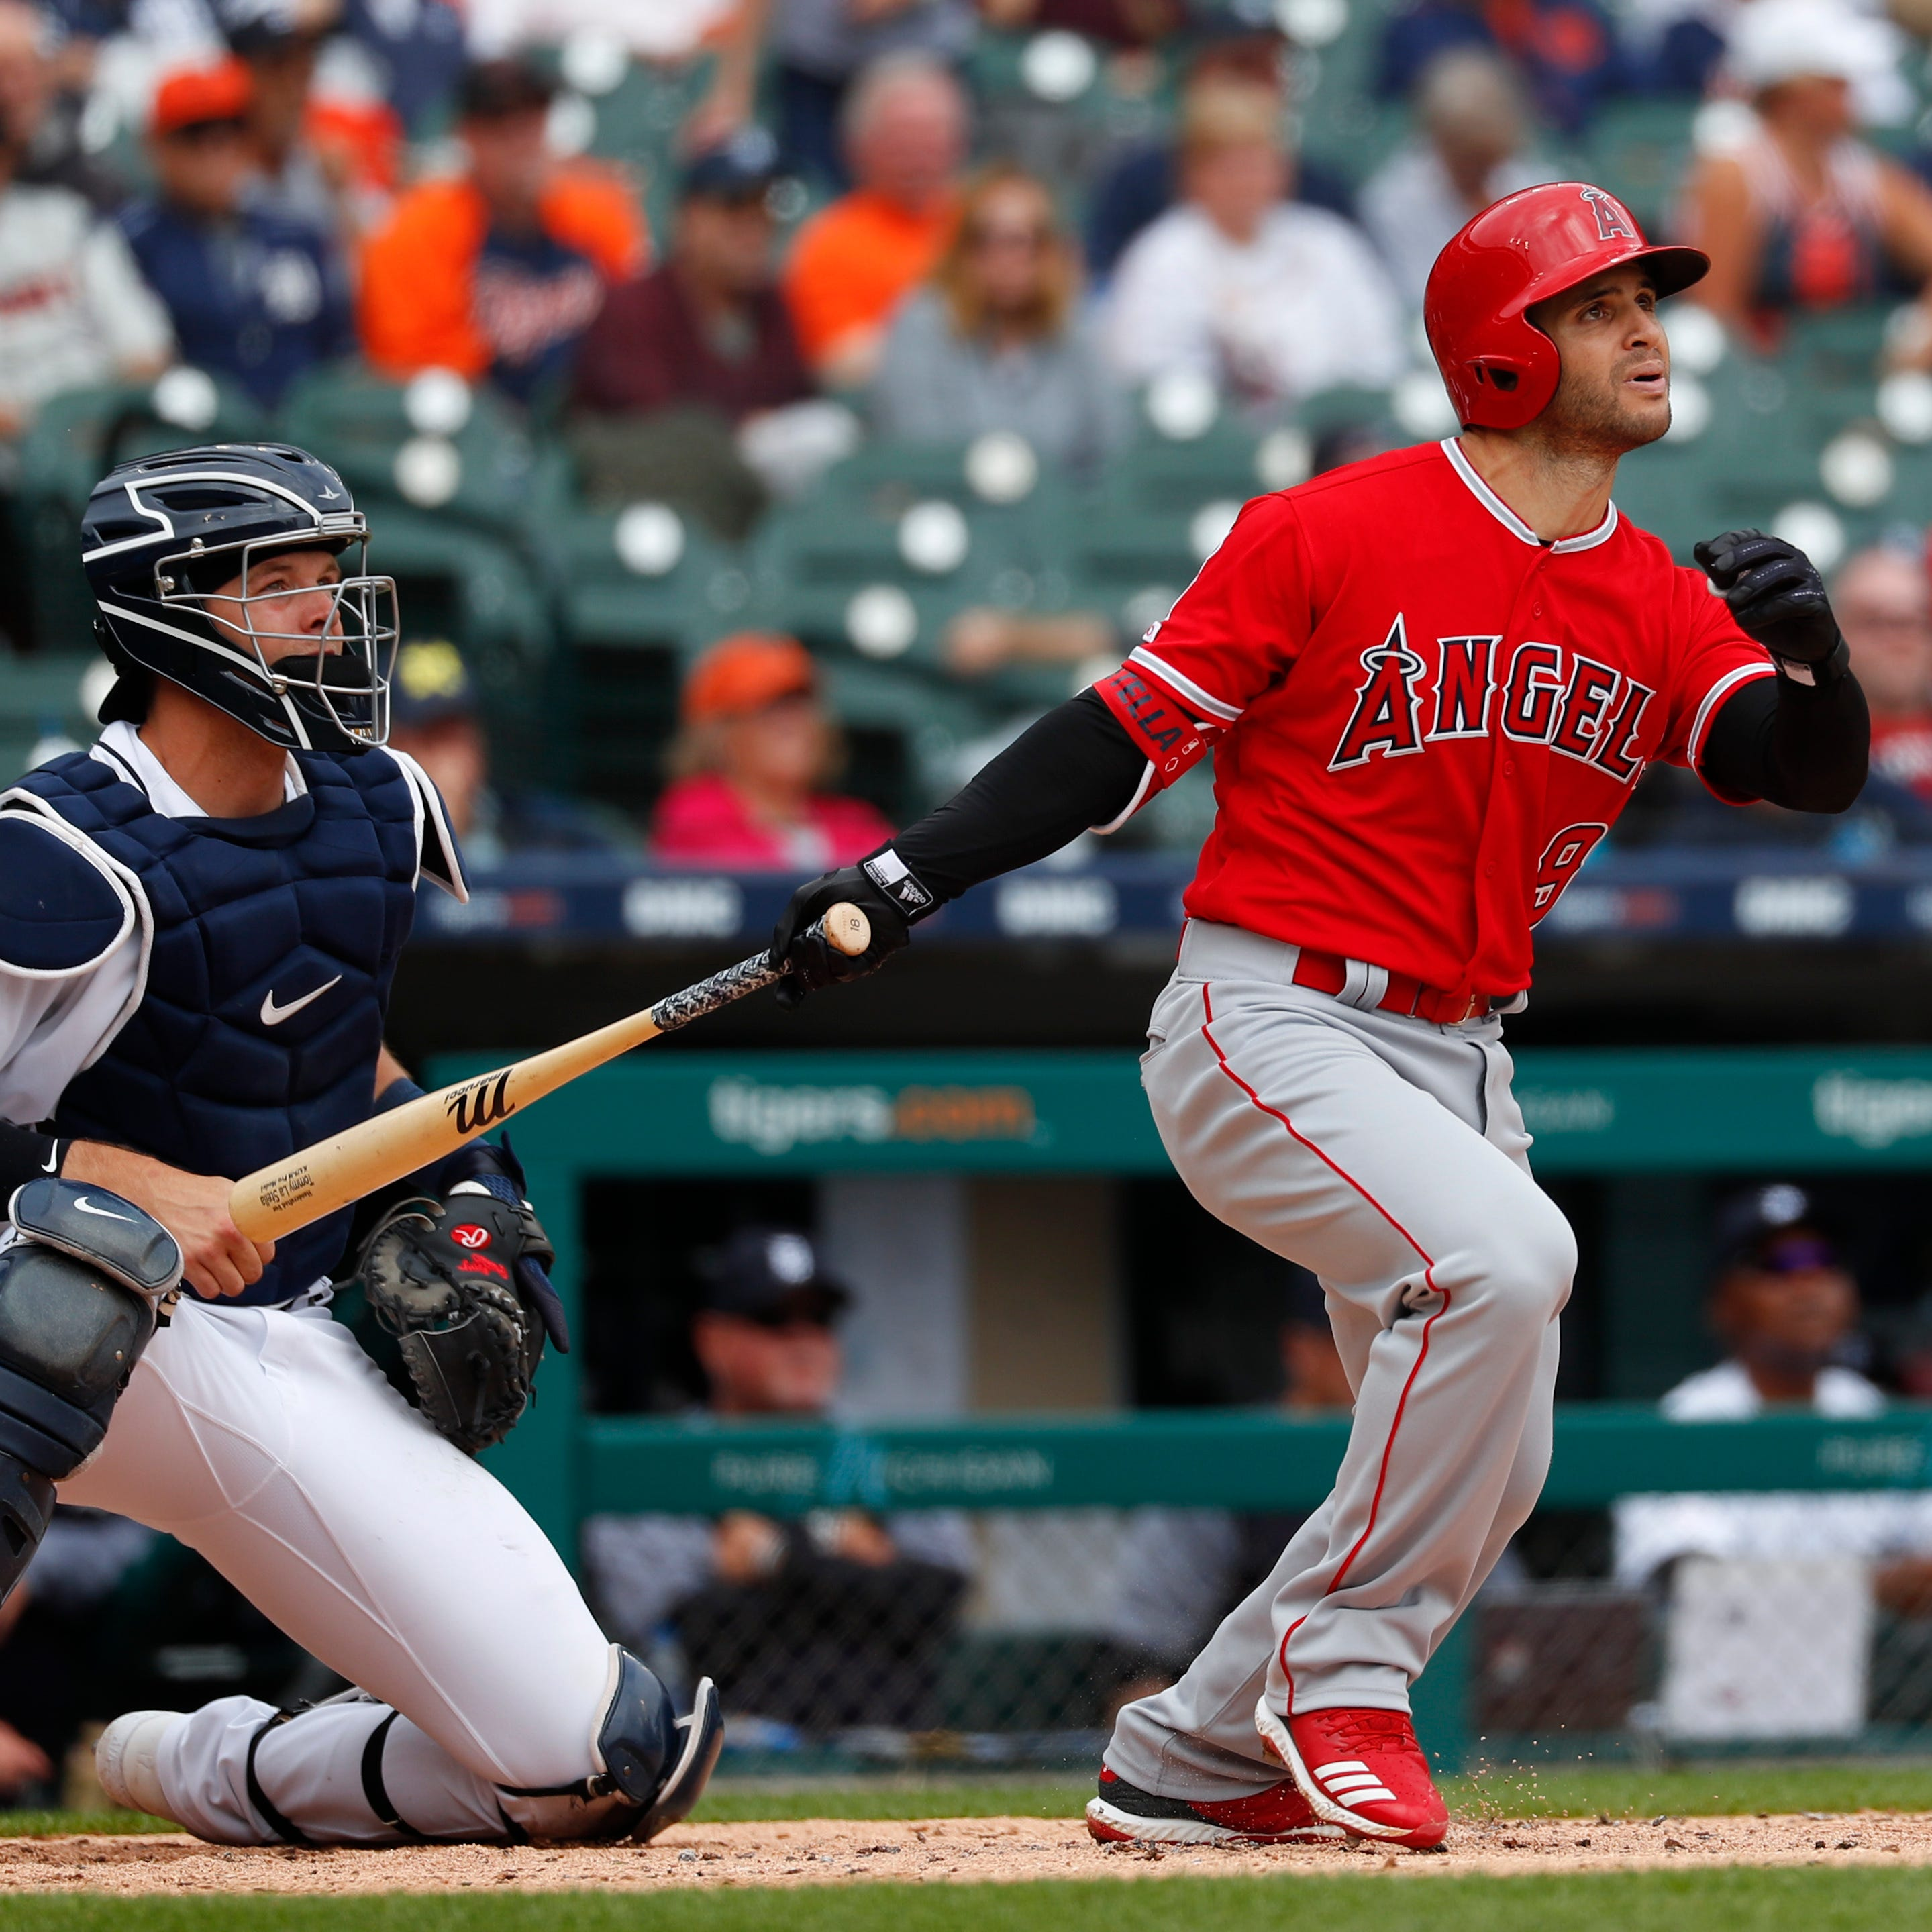 'A rough one': Angels belt five homers, shut out sleepy Tigers